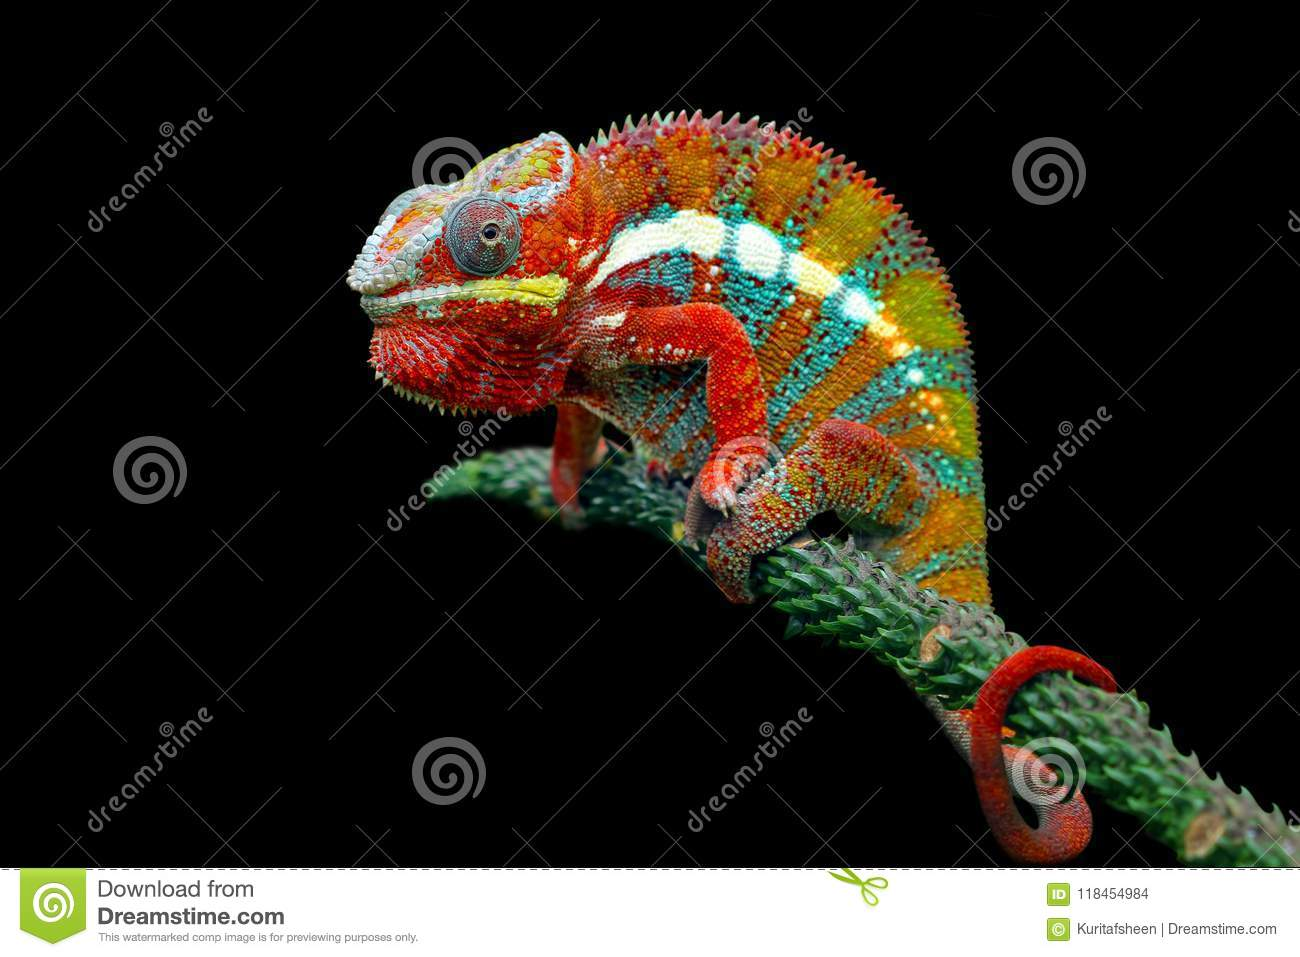 Download Chameleon Panther On Branch With Black Background Stock Photo - Image of living, endemic: 118454984